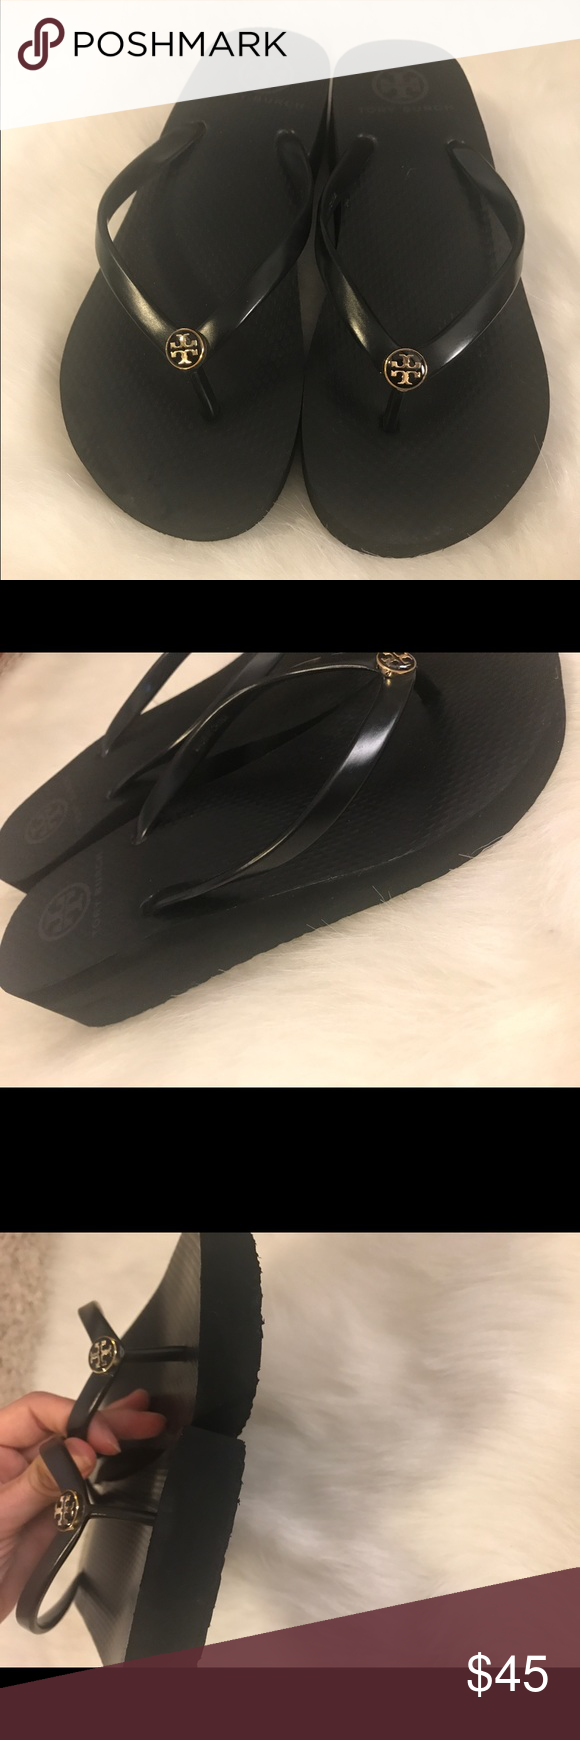 84816e168263f1 Tory Burch Black Thandie Rubber Wedge Flip Flop Only worn a handful of  times.